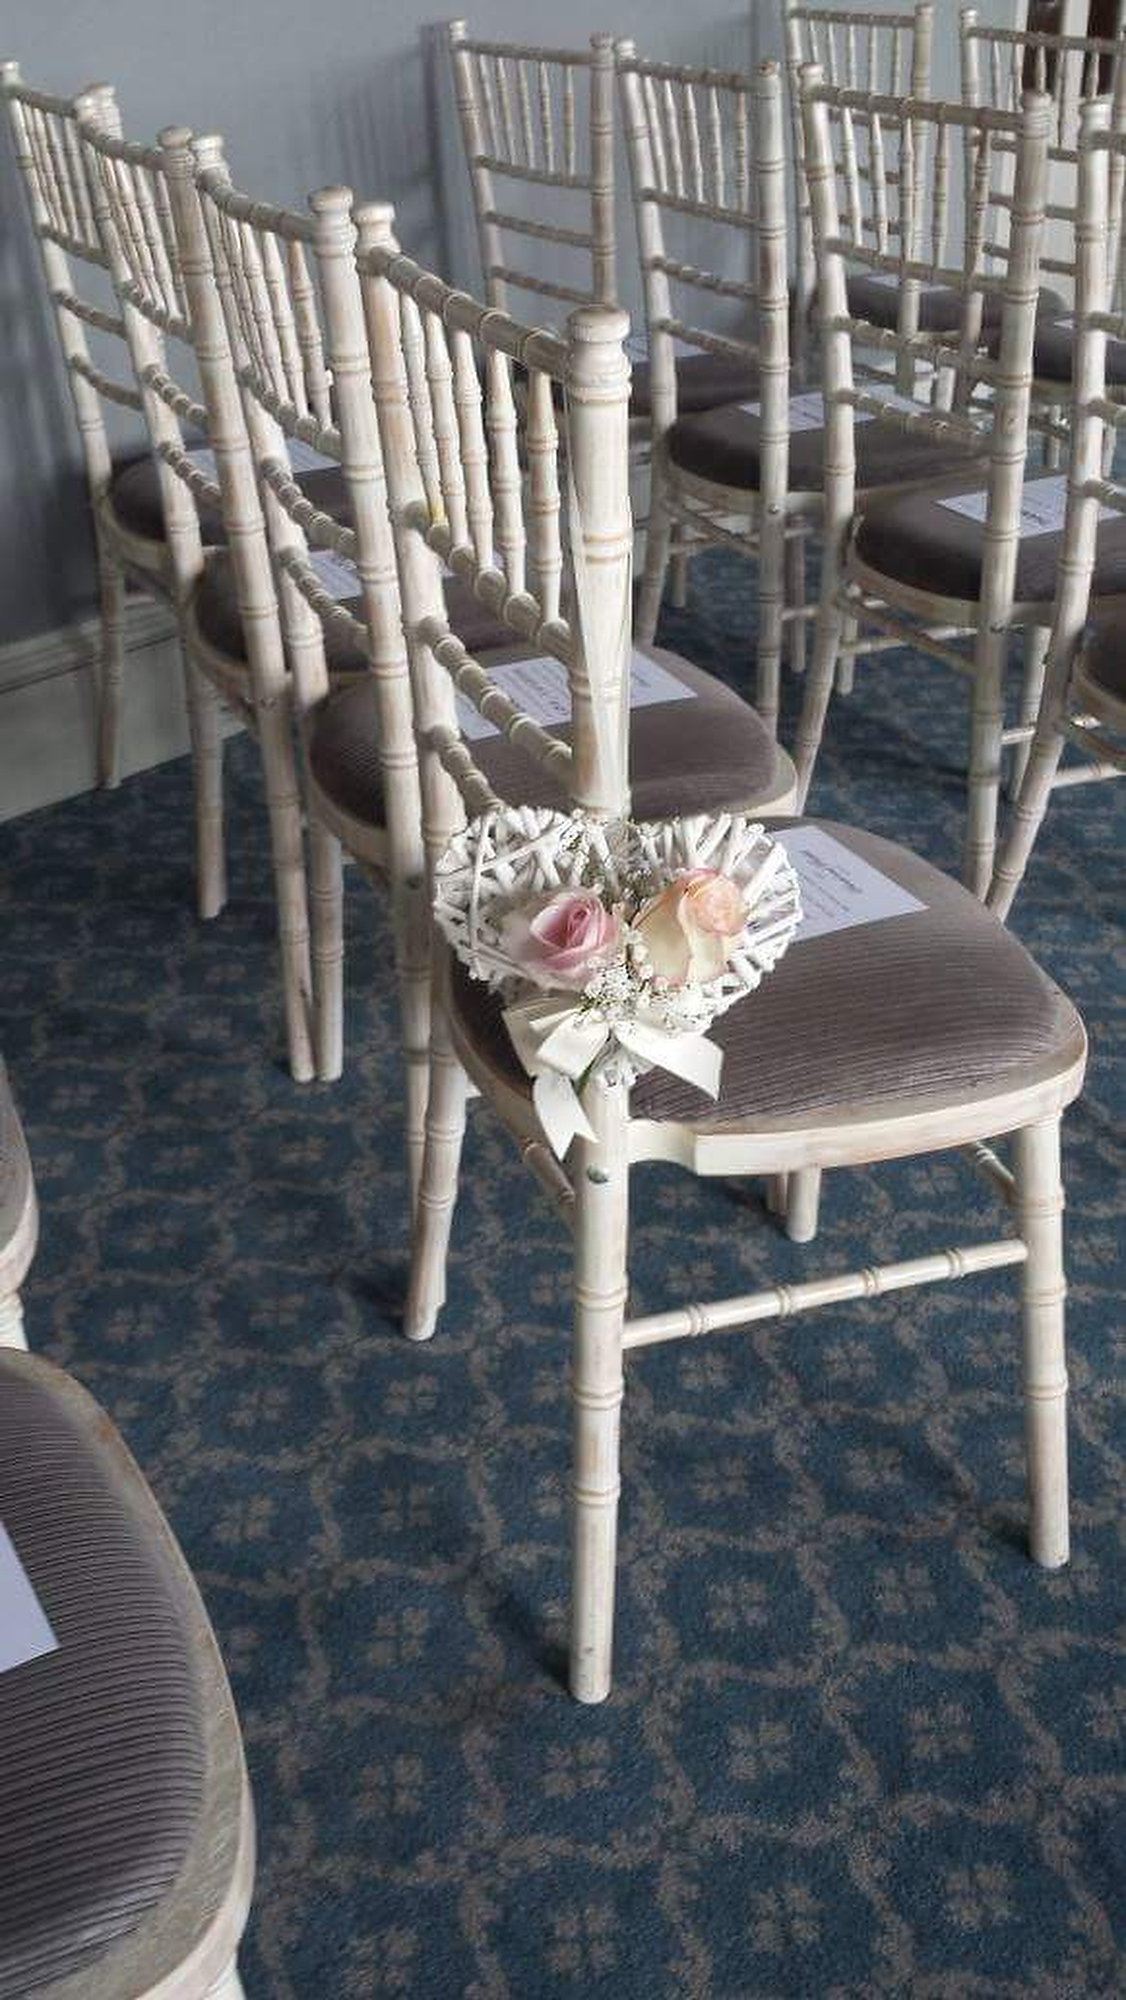 Church flowers for your wedding by Rugeley Florist - Rugeley Floral Studio Fine Flowers